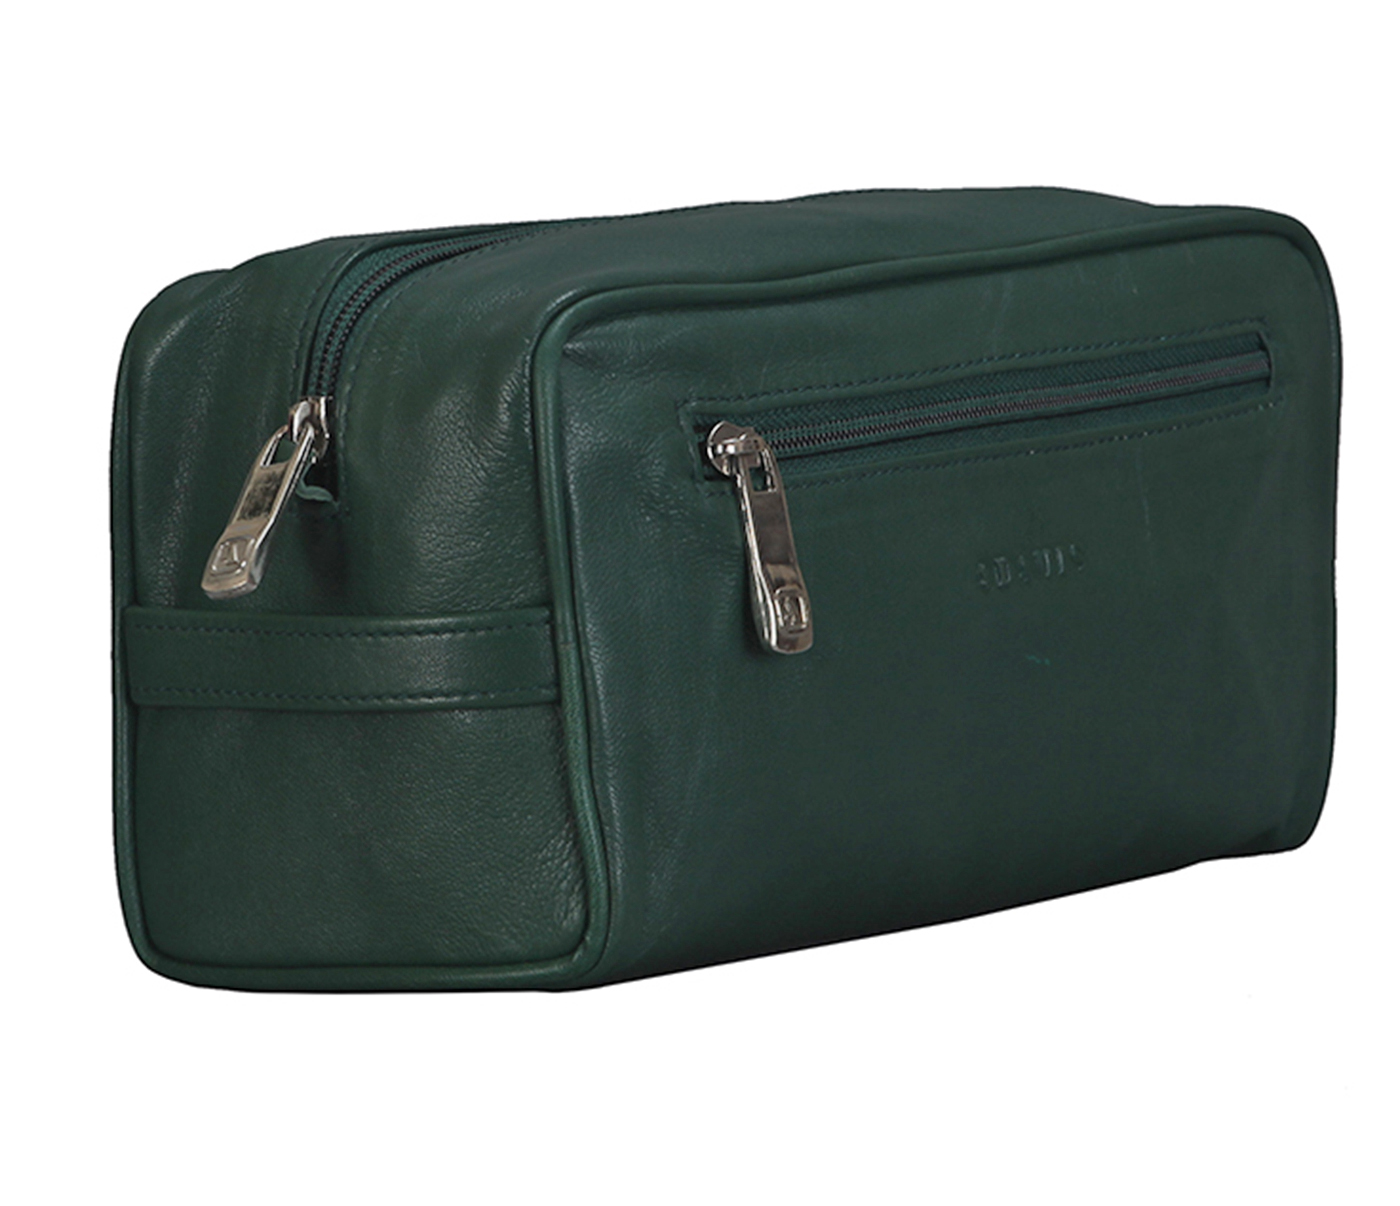 SC1--Unisex Wash & Toiletry travel Bag in Genuine Leather - Green